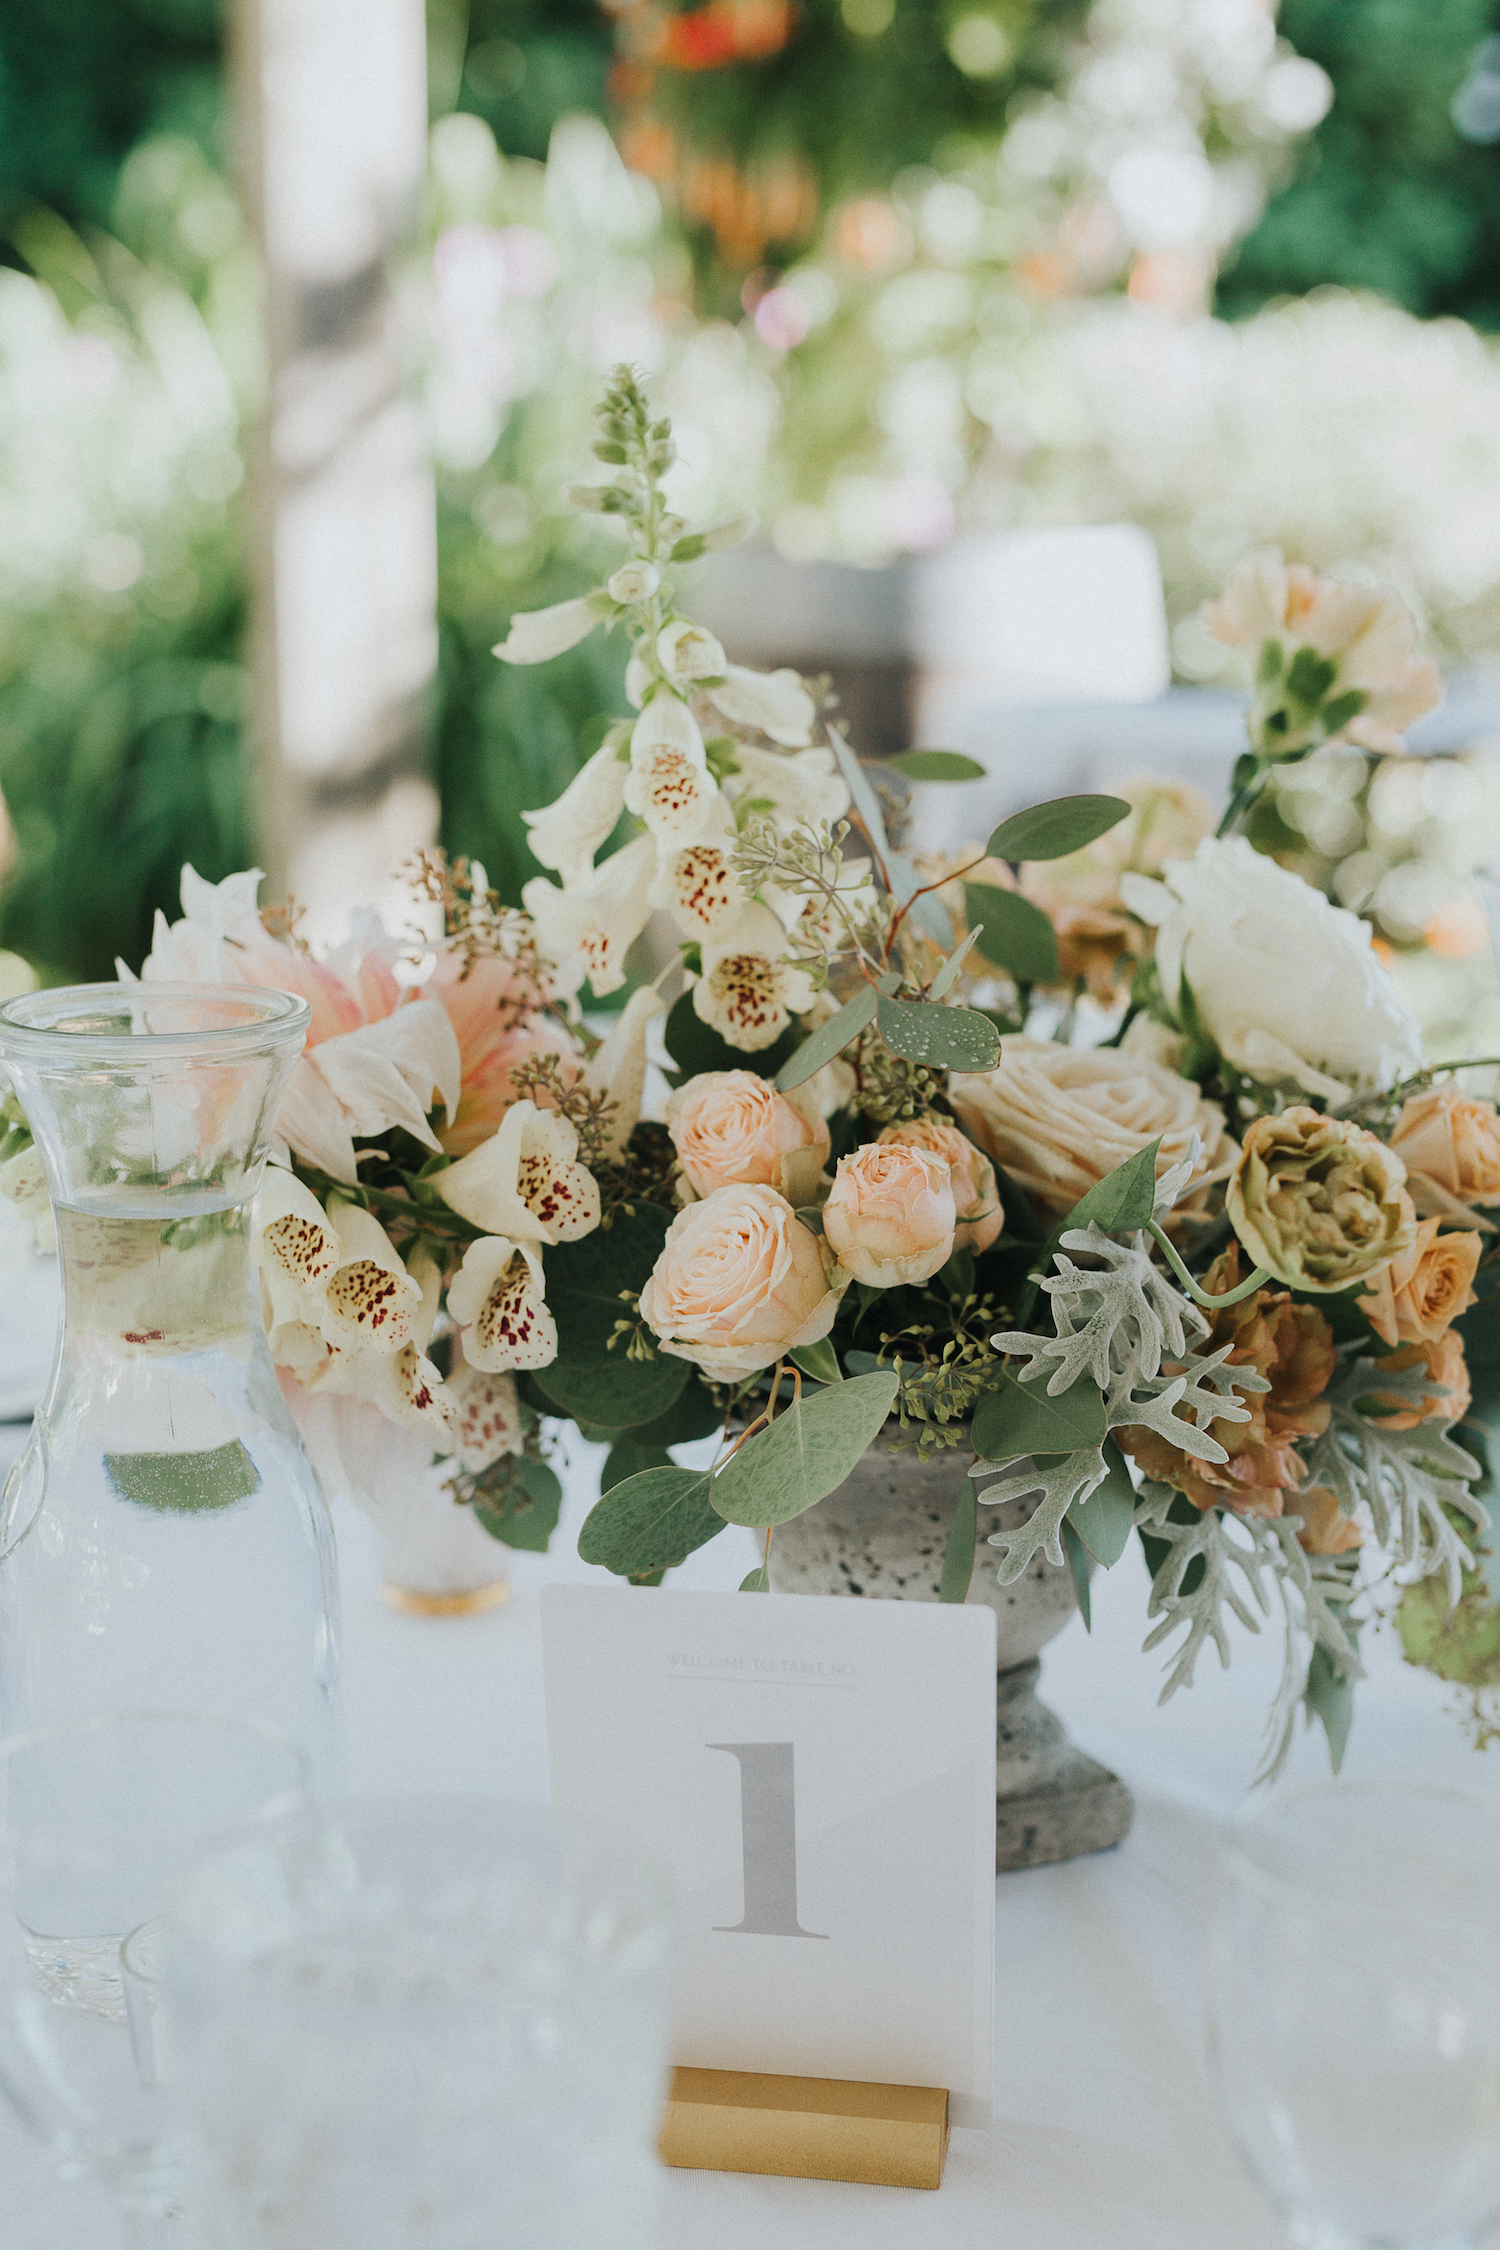 Wild Bloom Floral - Rachel Birkhofer Photography - Jessica and Phil - Real Wedding - Seattle 35.jpeg